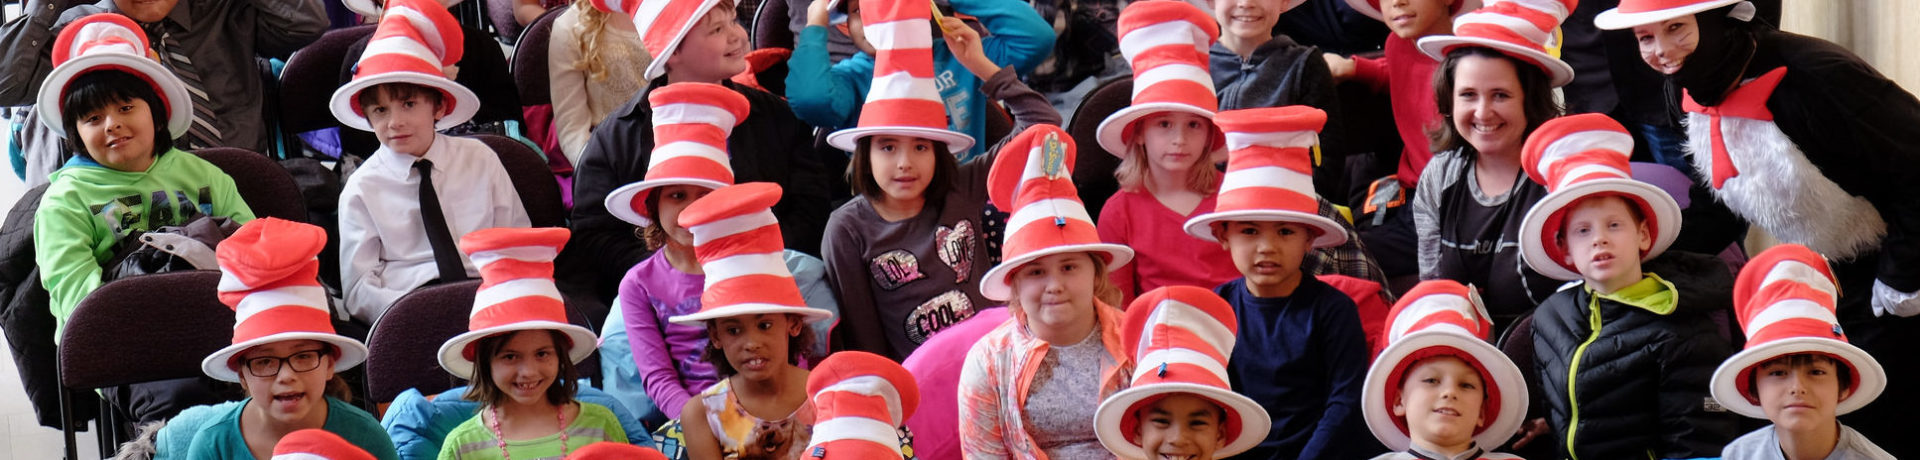 Read Across America kids with hats